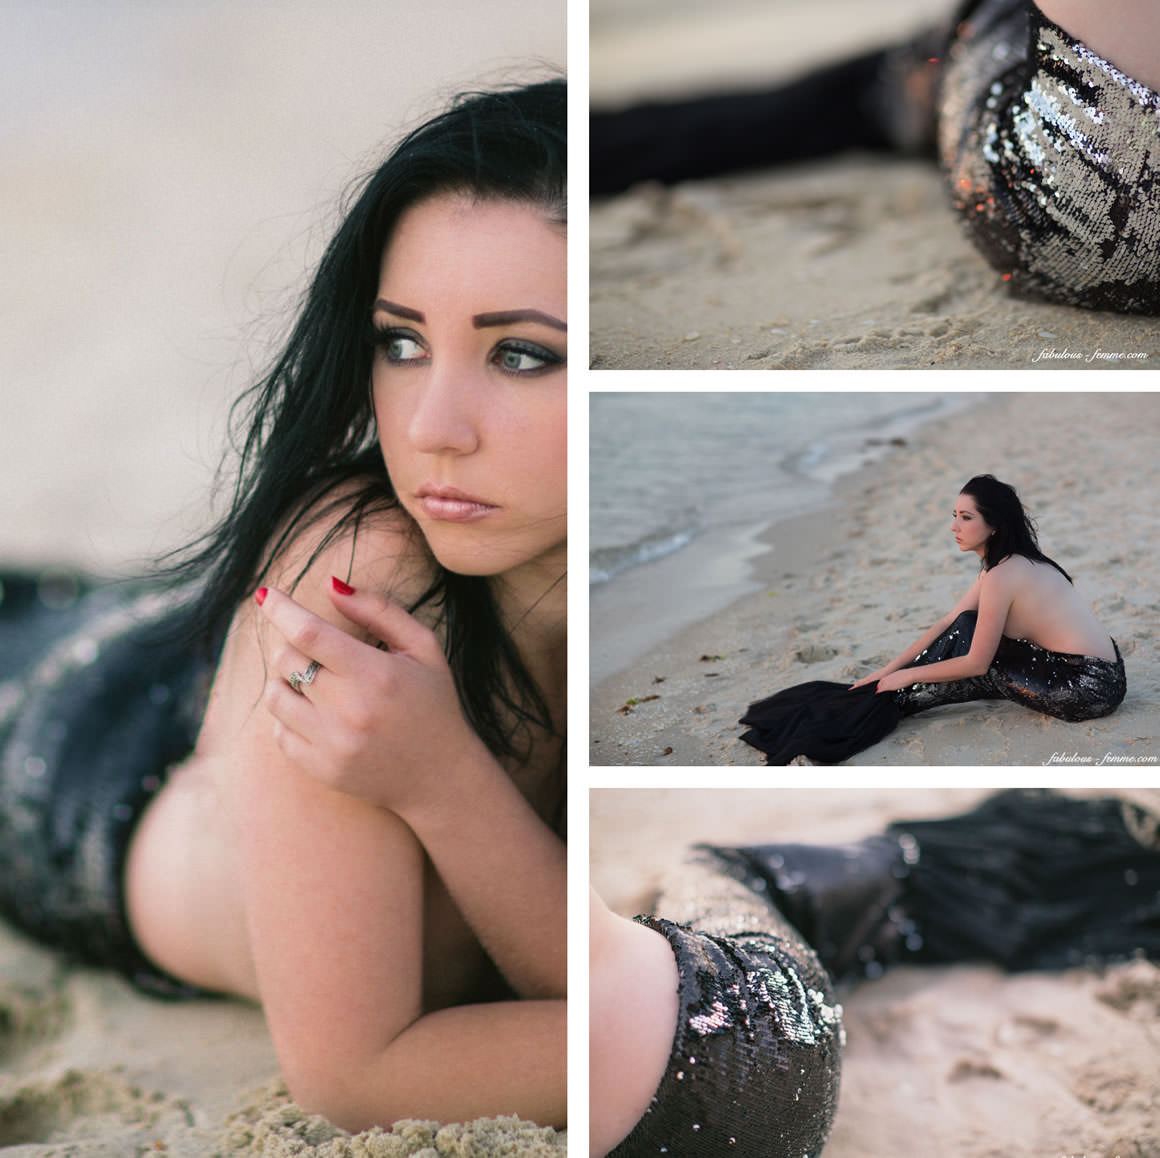 photographing mermaids at the beach